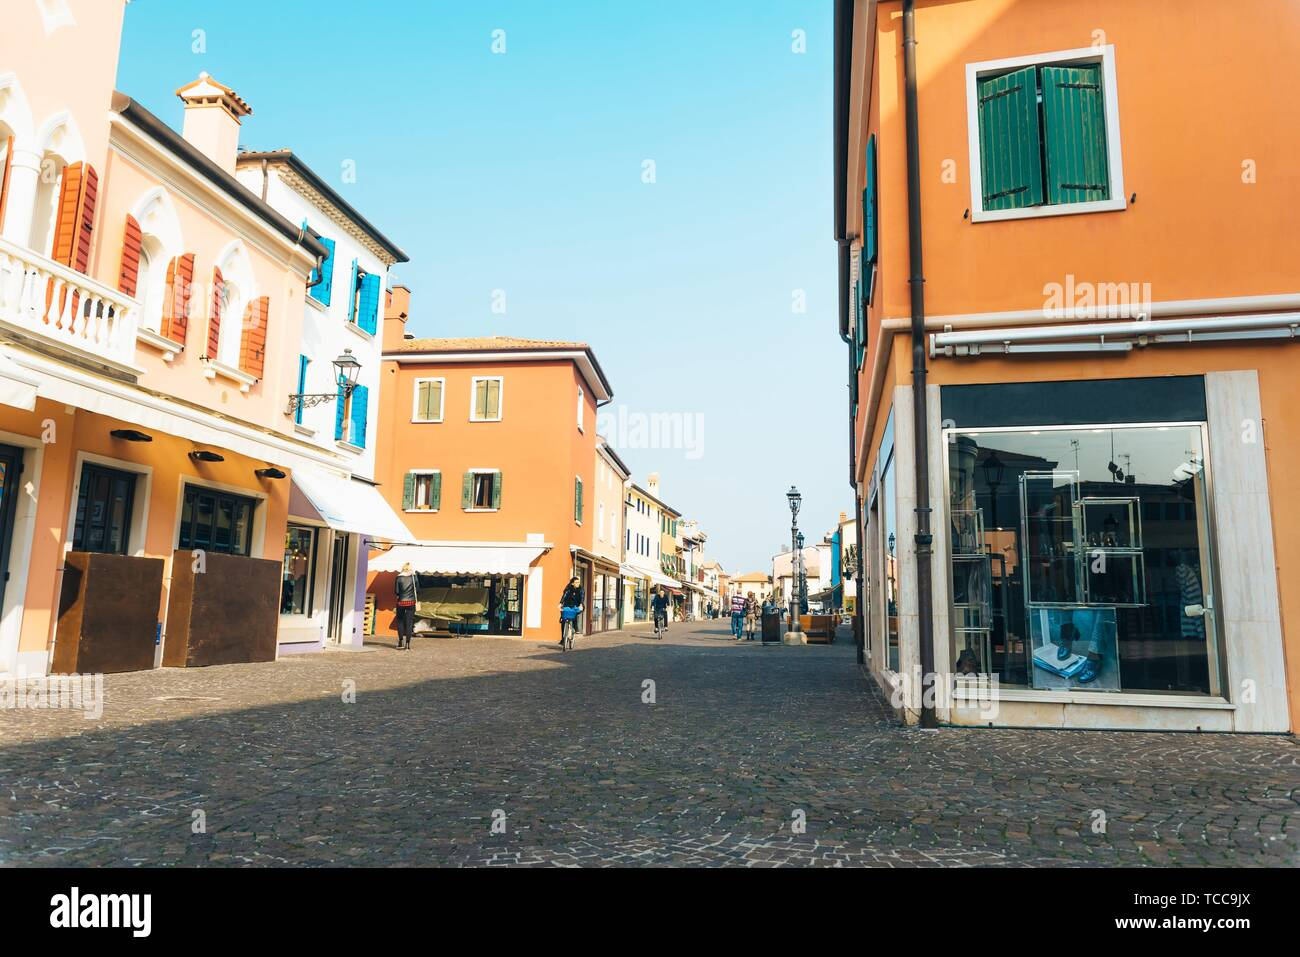 Tourist district of the old provincial town of Caorle in Italy on the Adriatic coast. - Stock Image